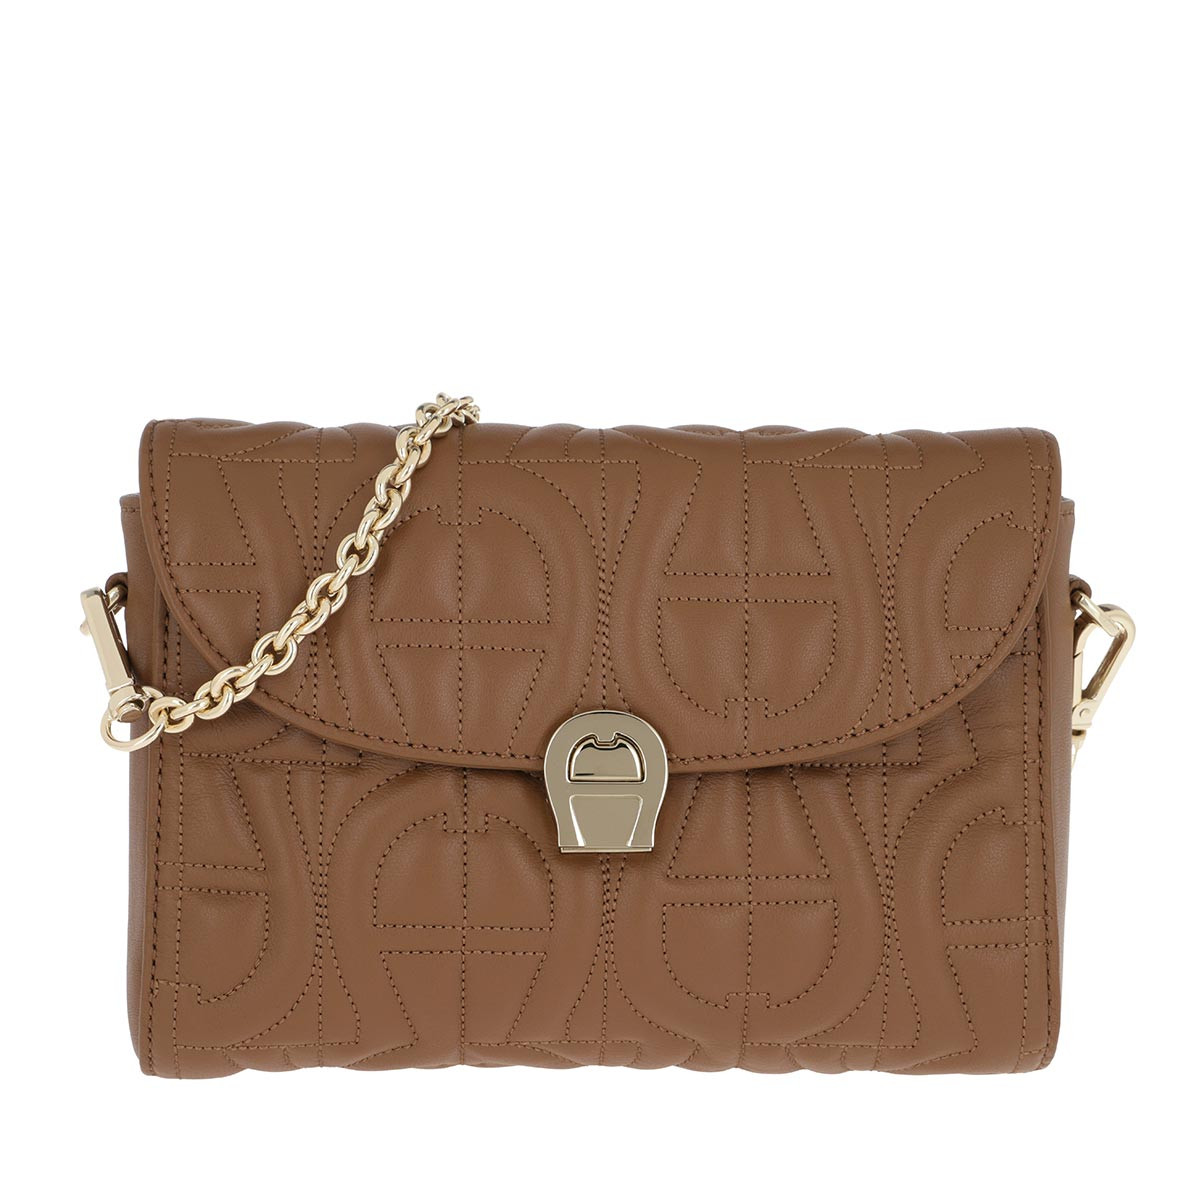 Aigner Umhängetasche - Genoveva Crossbody Dark Toffee Brown - in braun - für Damen